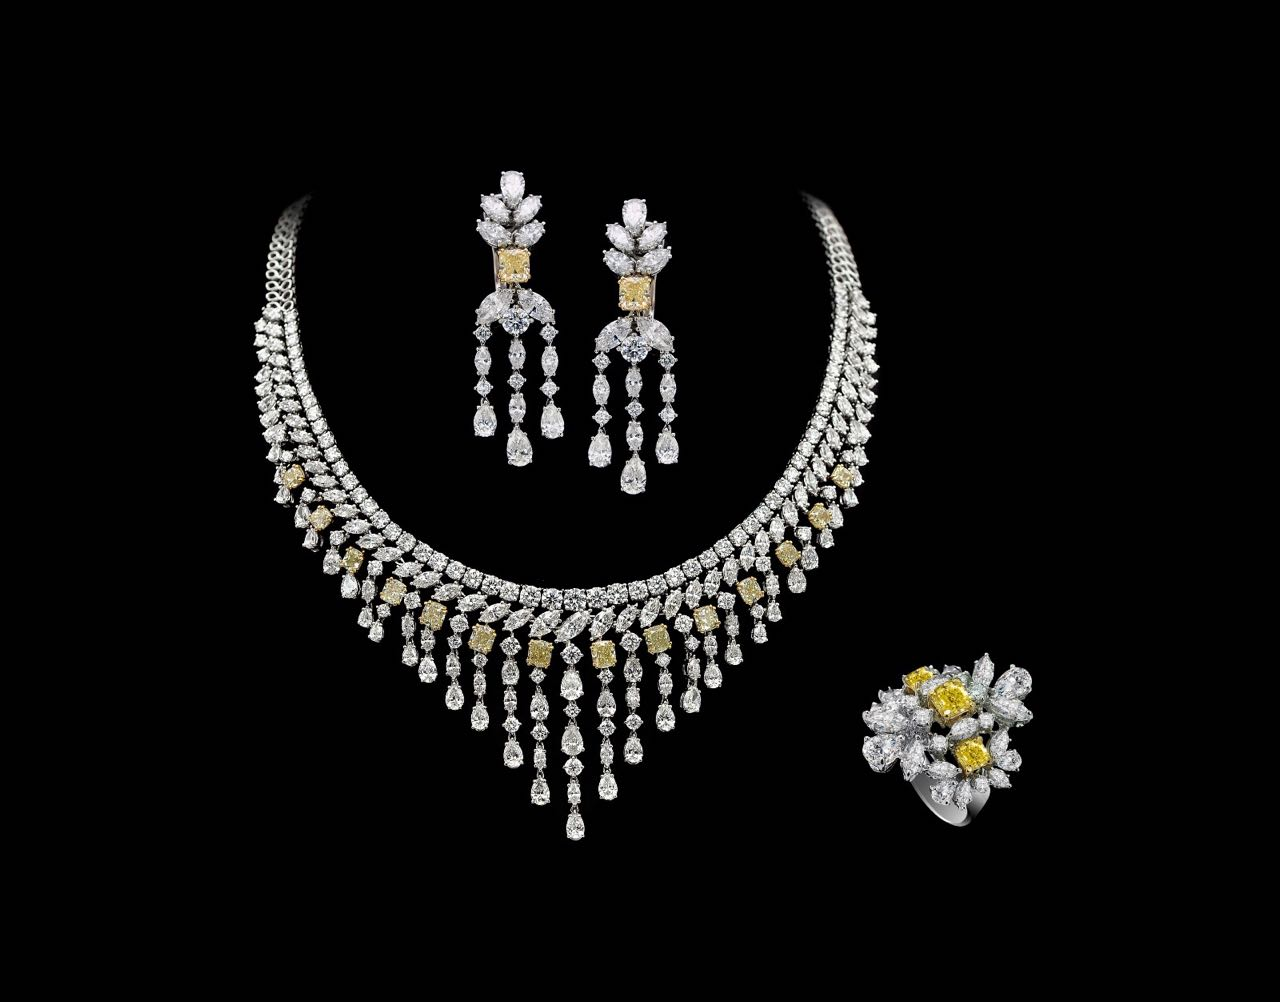 White and yellow diamond earring, necklace and ring set